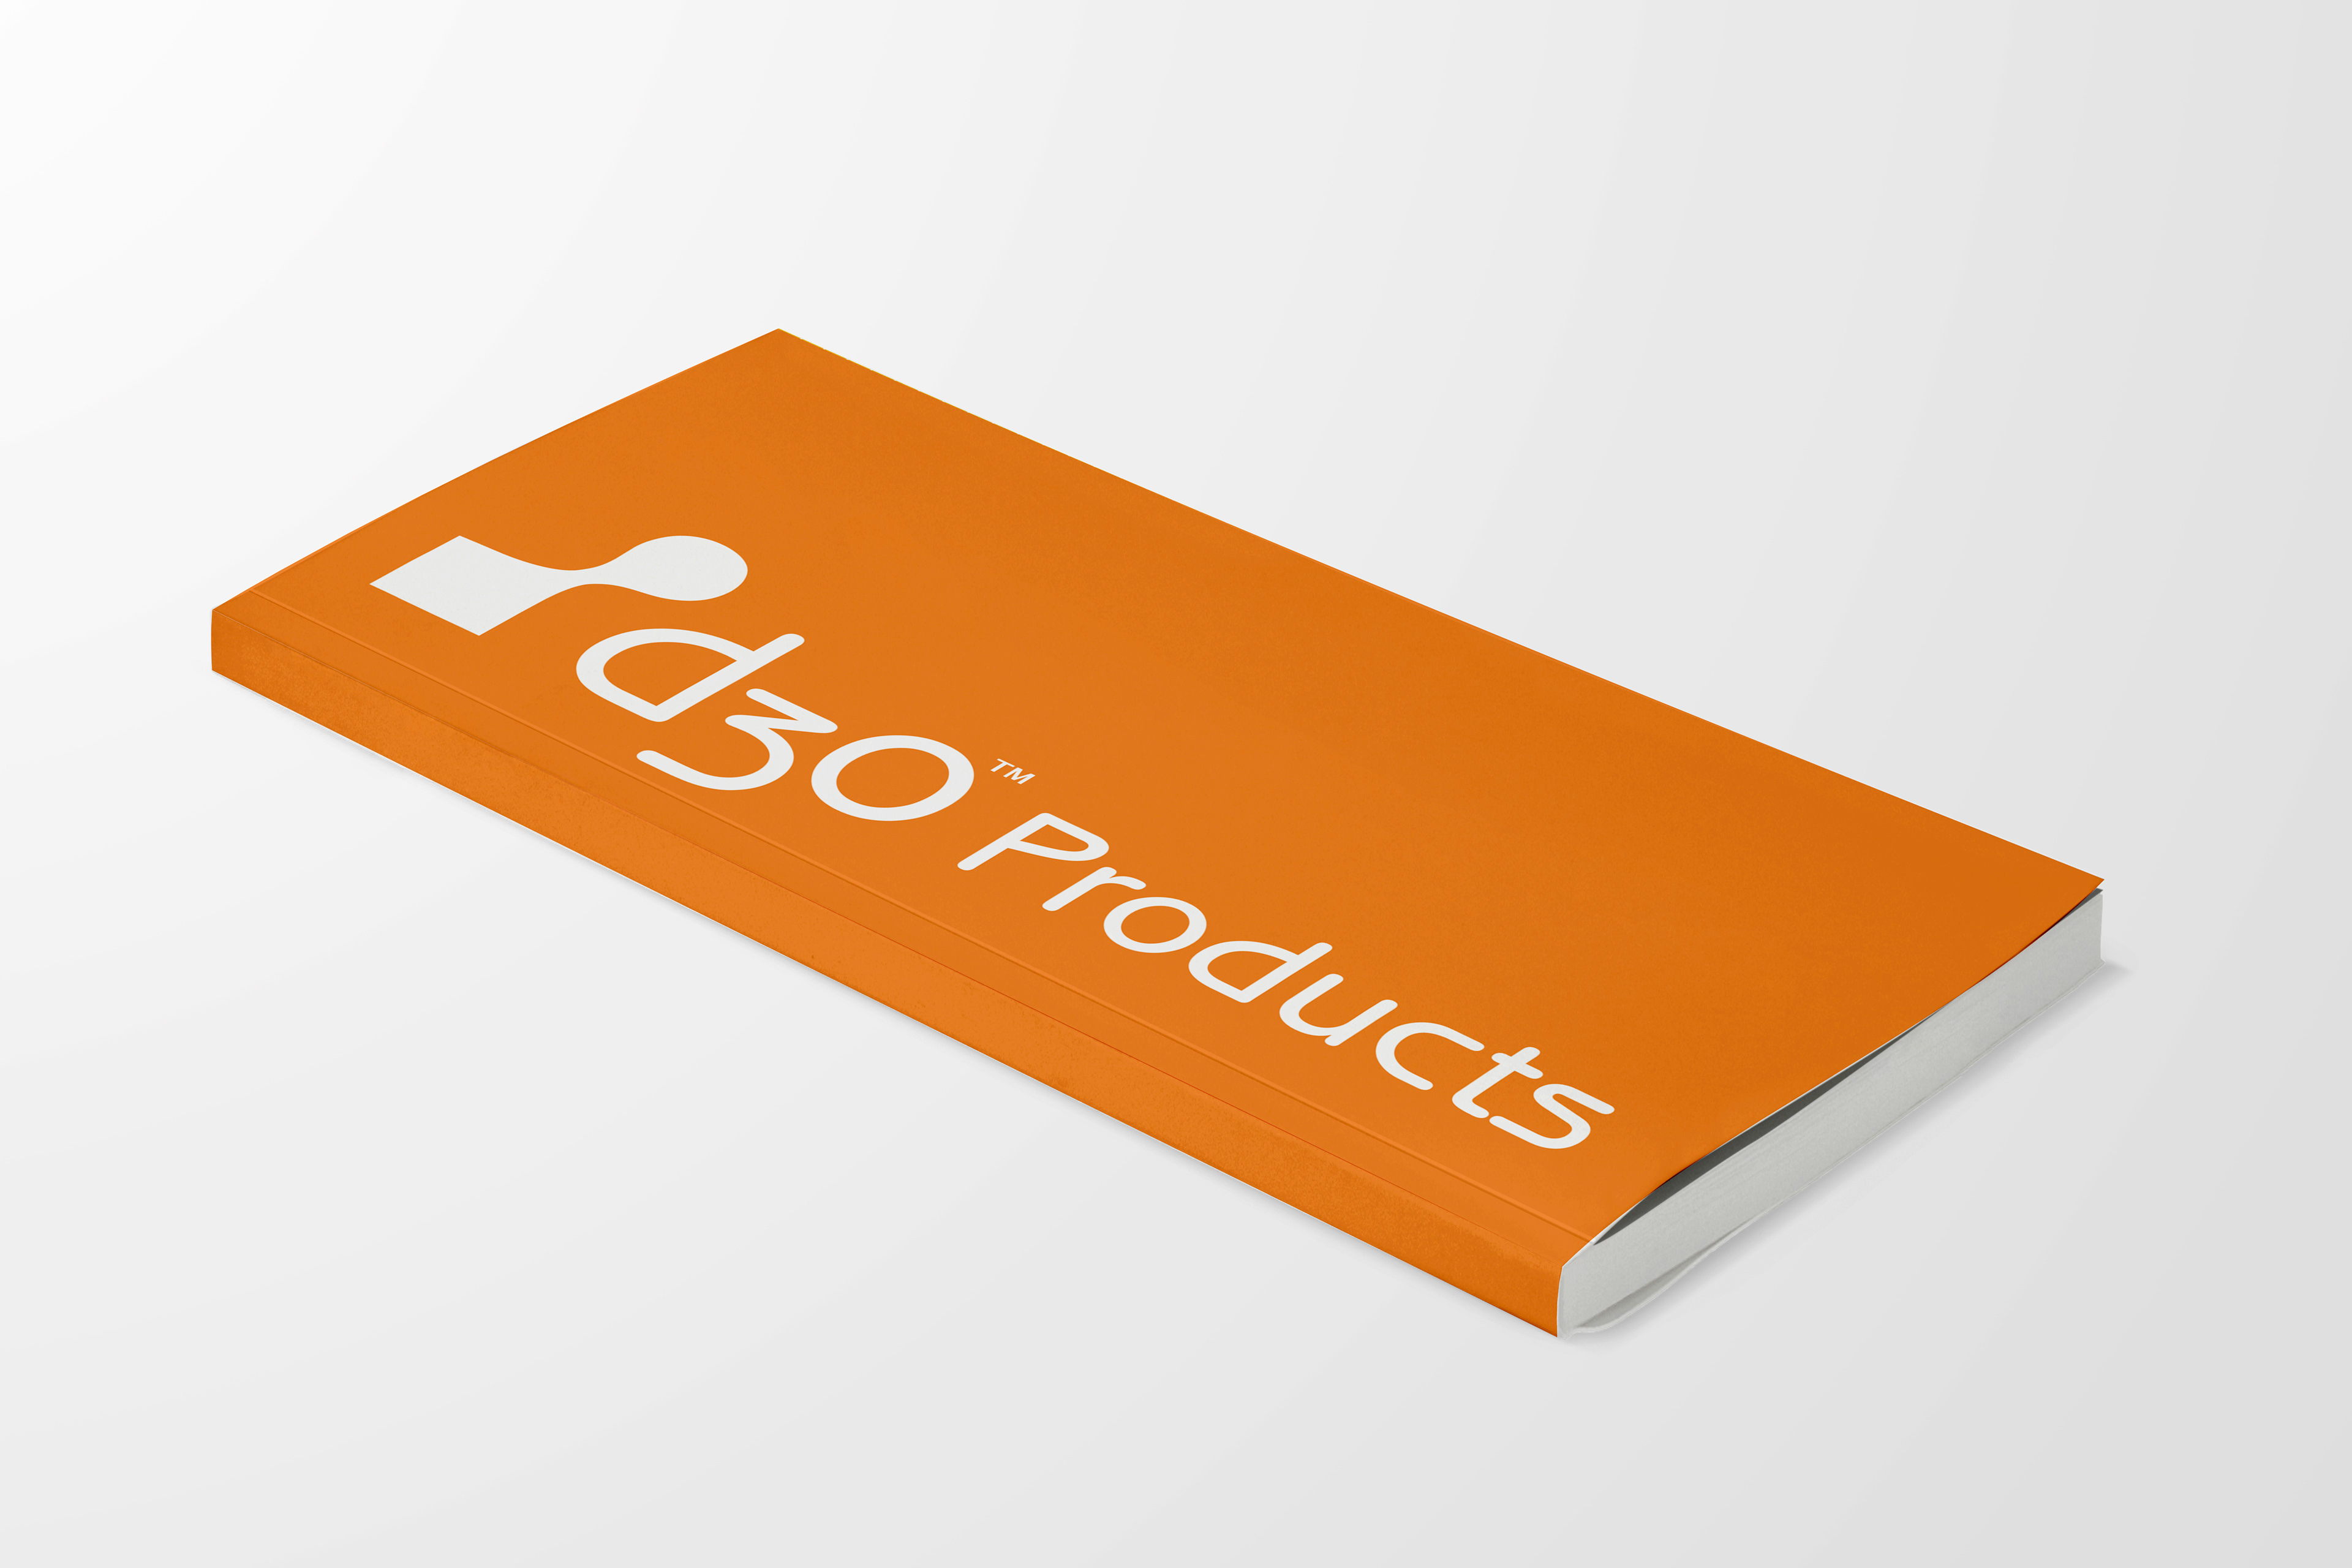 d3o products